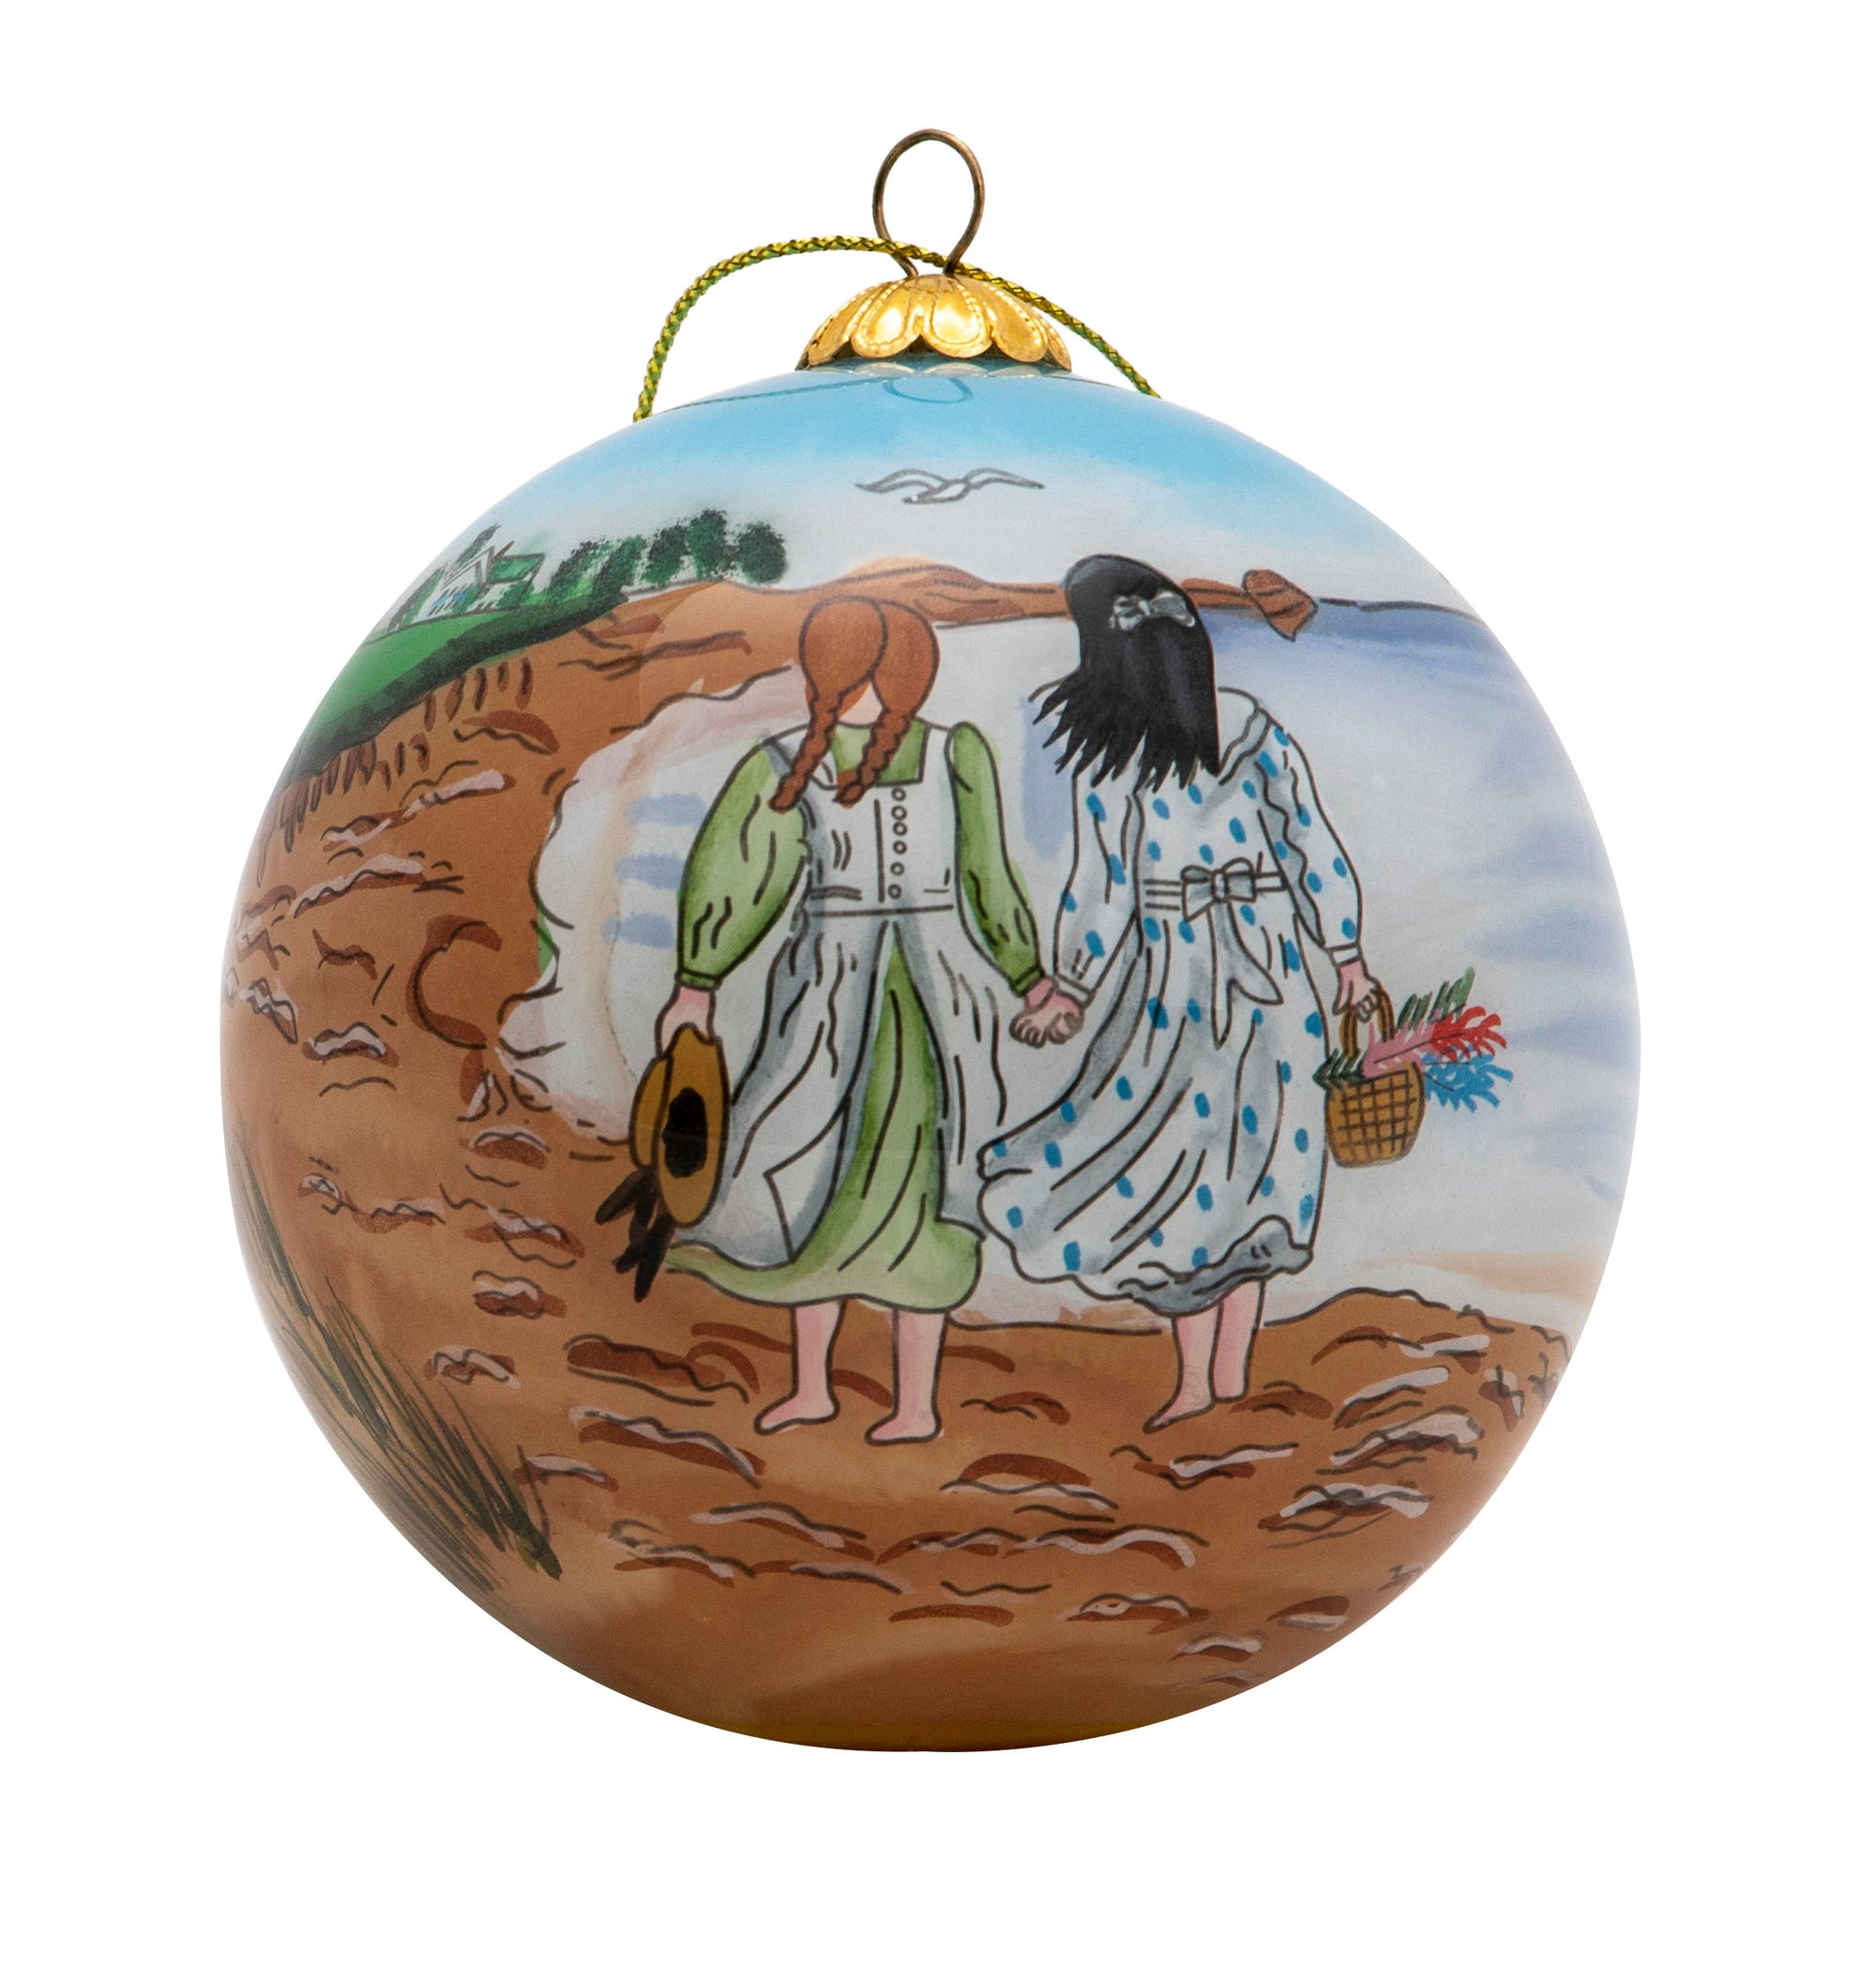 "Kindred Spirits 3"" Glass Hanging Ornament"